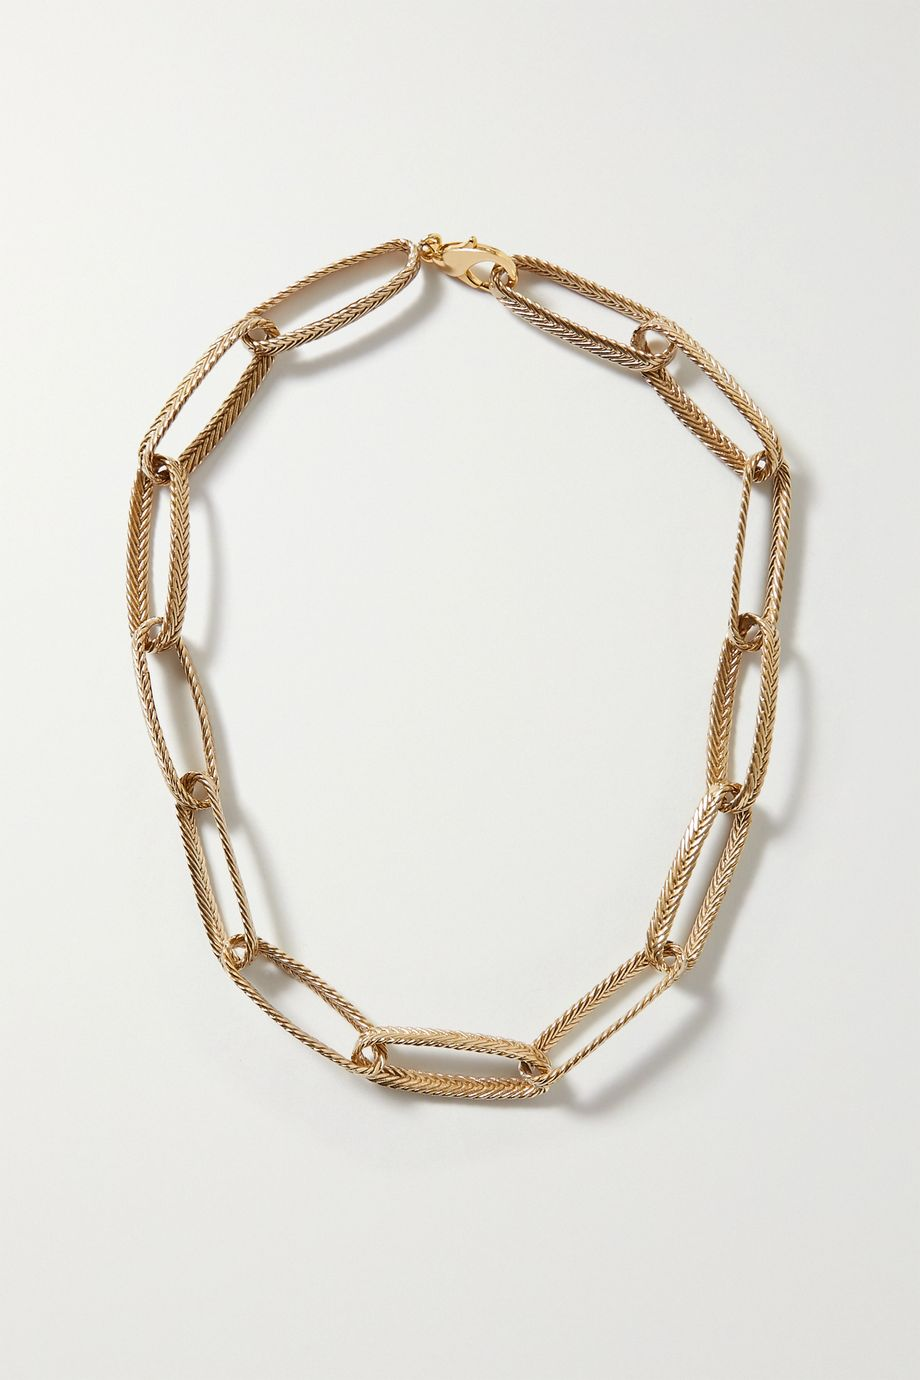 STVDIO Claude gold-tone necklace